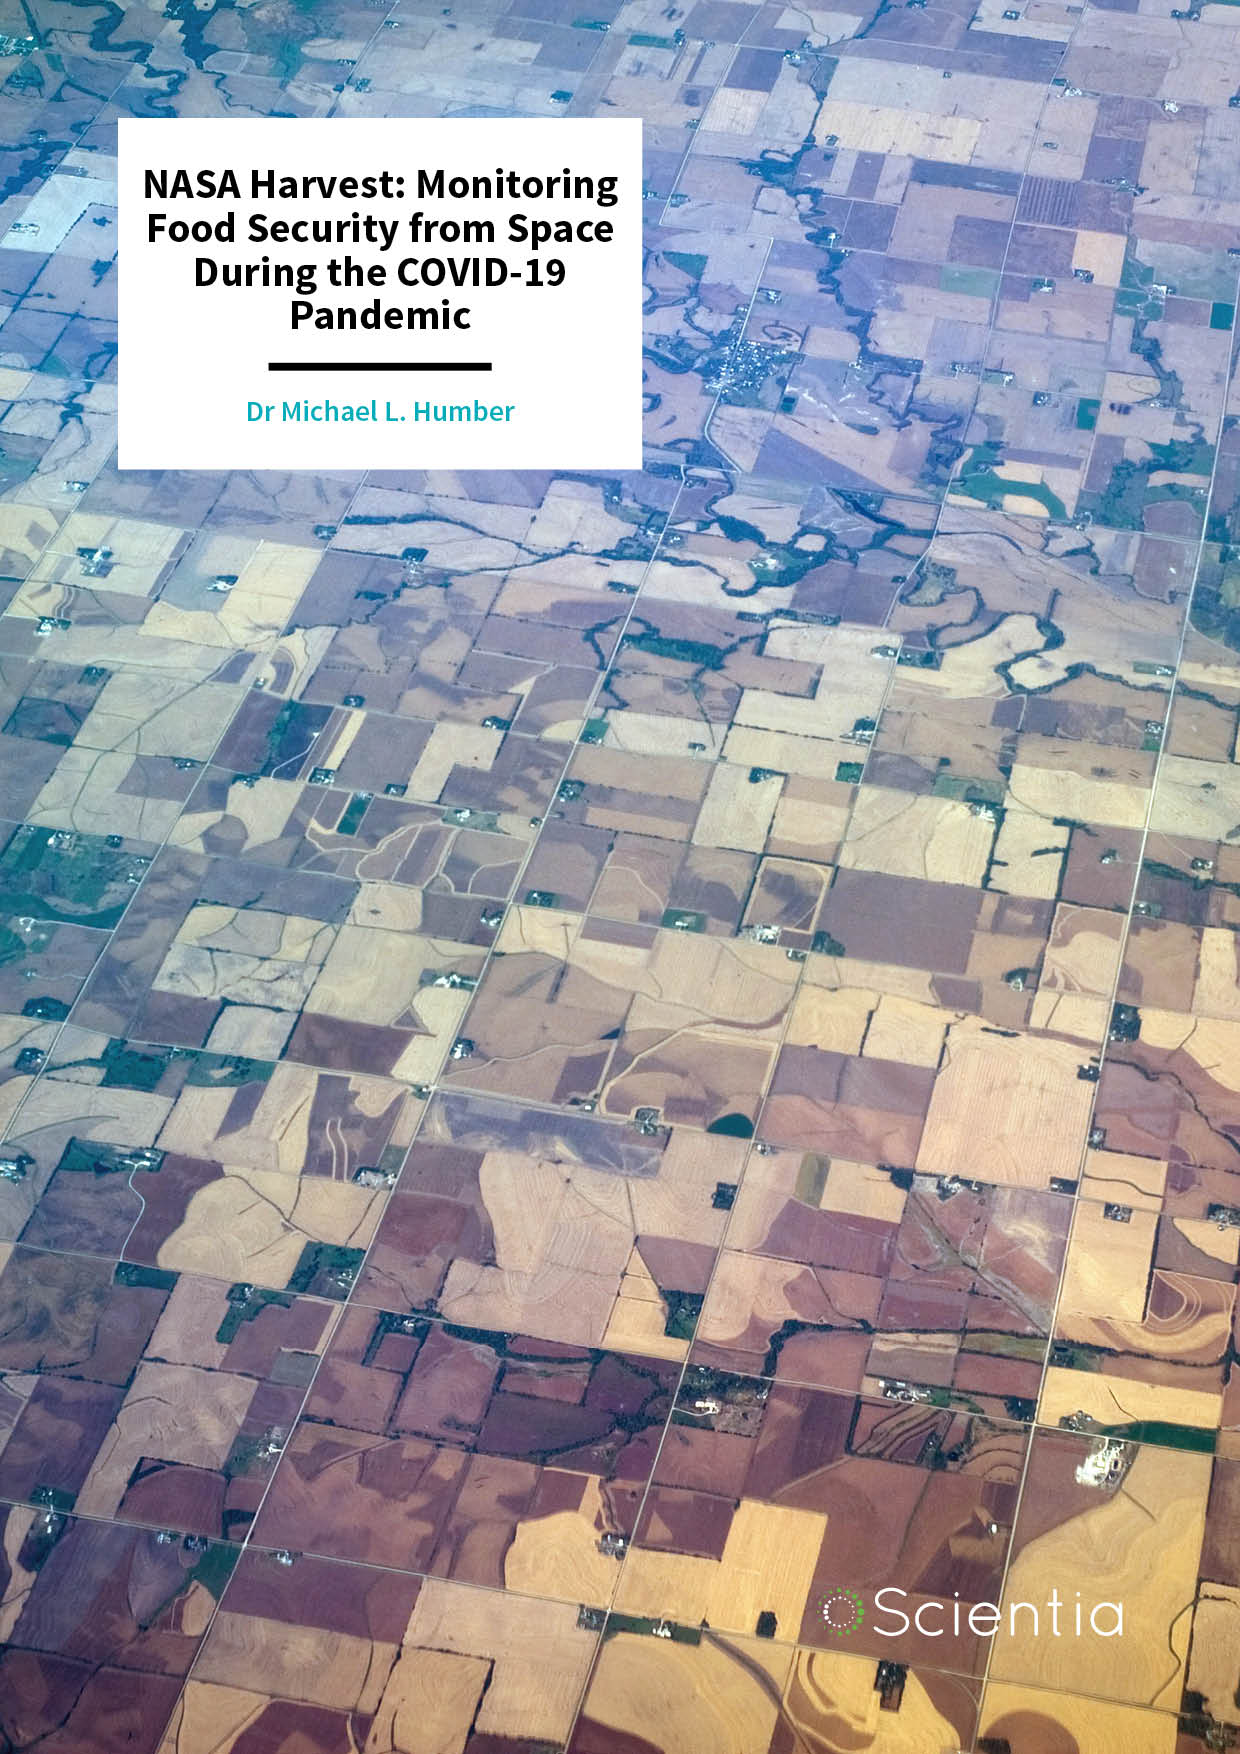 Dr Michael Humber – NASA Harvest: Monitoring Food Security from Space During the COVID-19 Pandemic